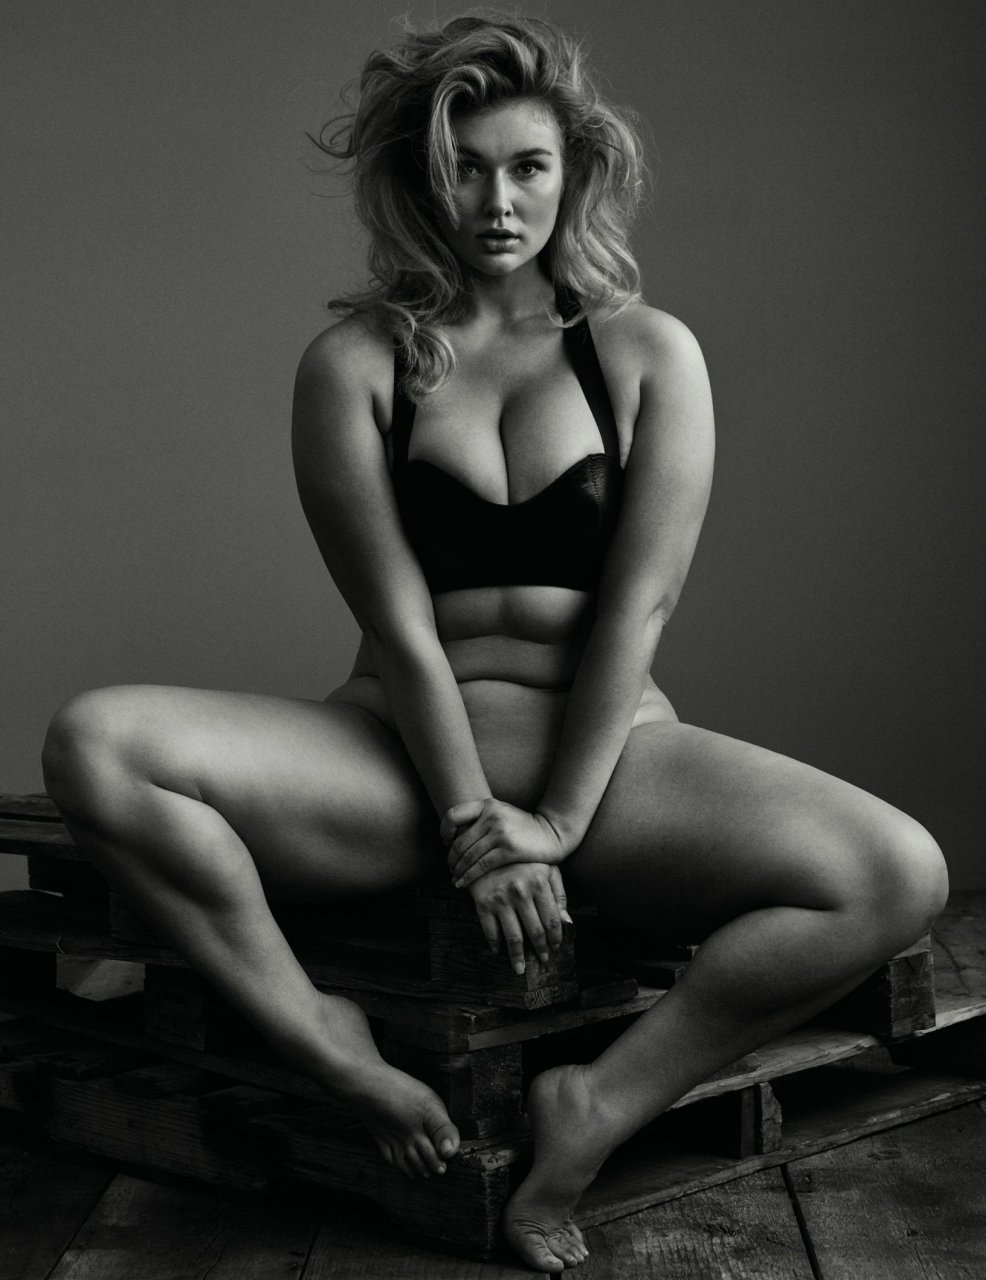 Hunter McGrady Nude Photos and Videos | #TheFappening